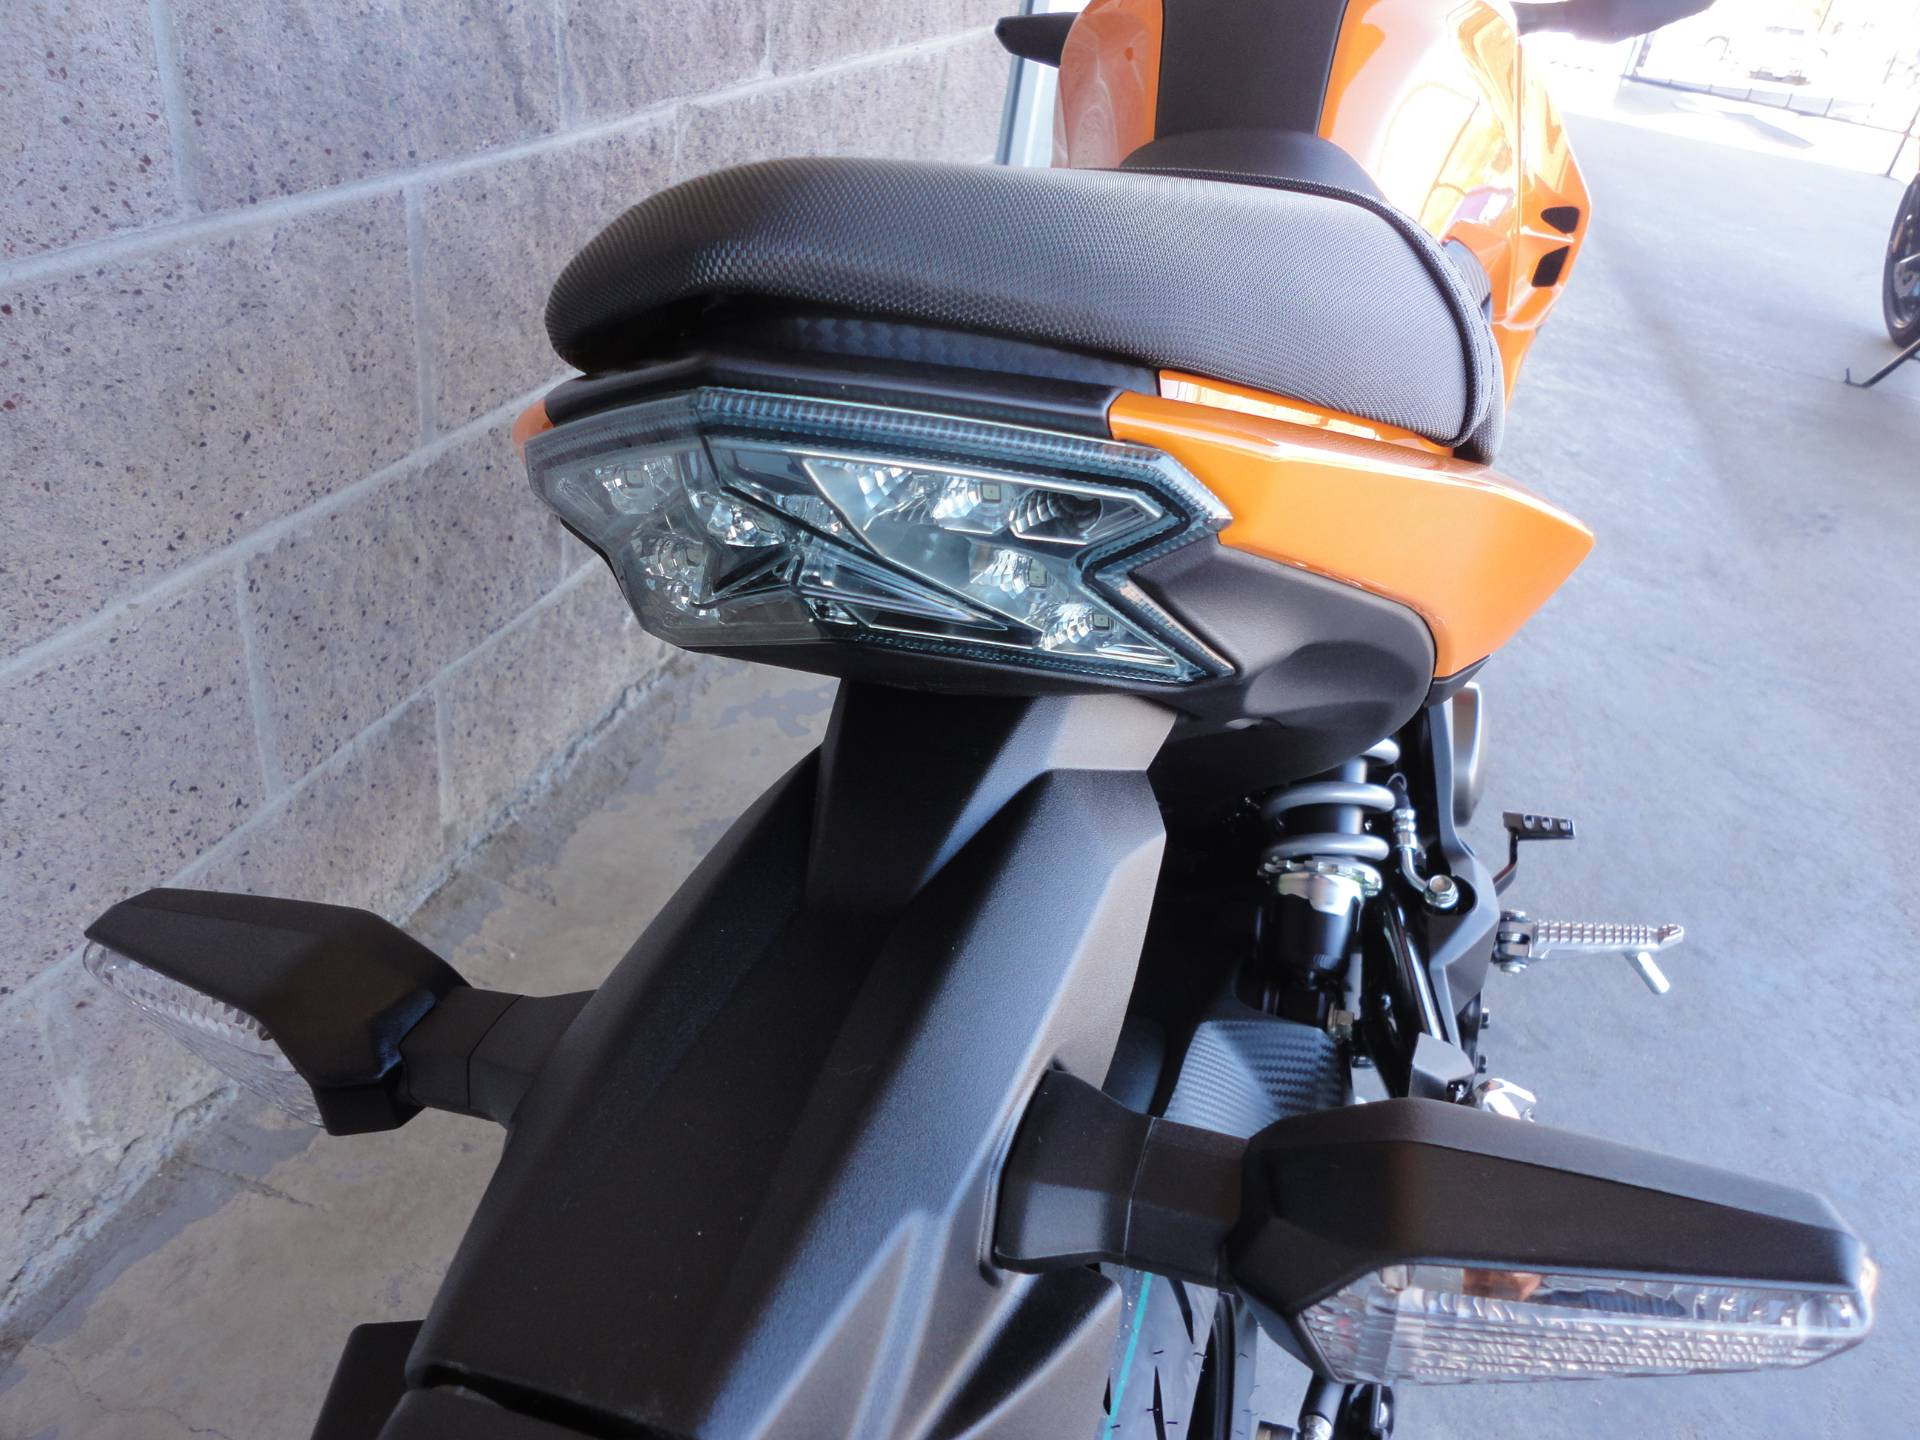 2019 Kawasaki Z125 Pro in Denver, Colorado - Photo 21